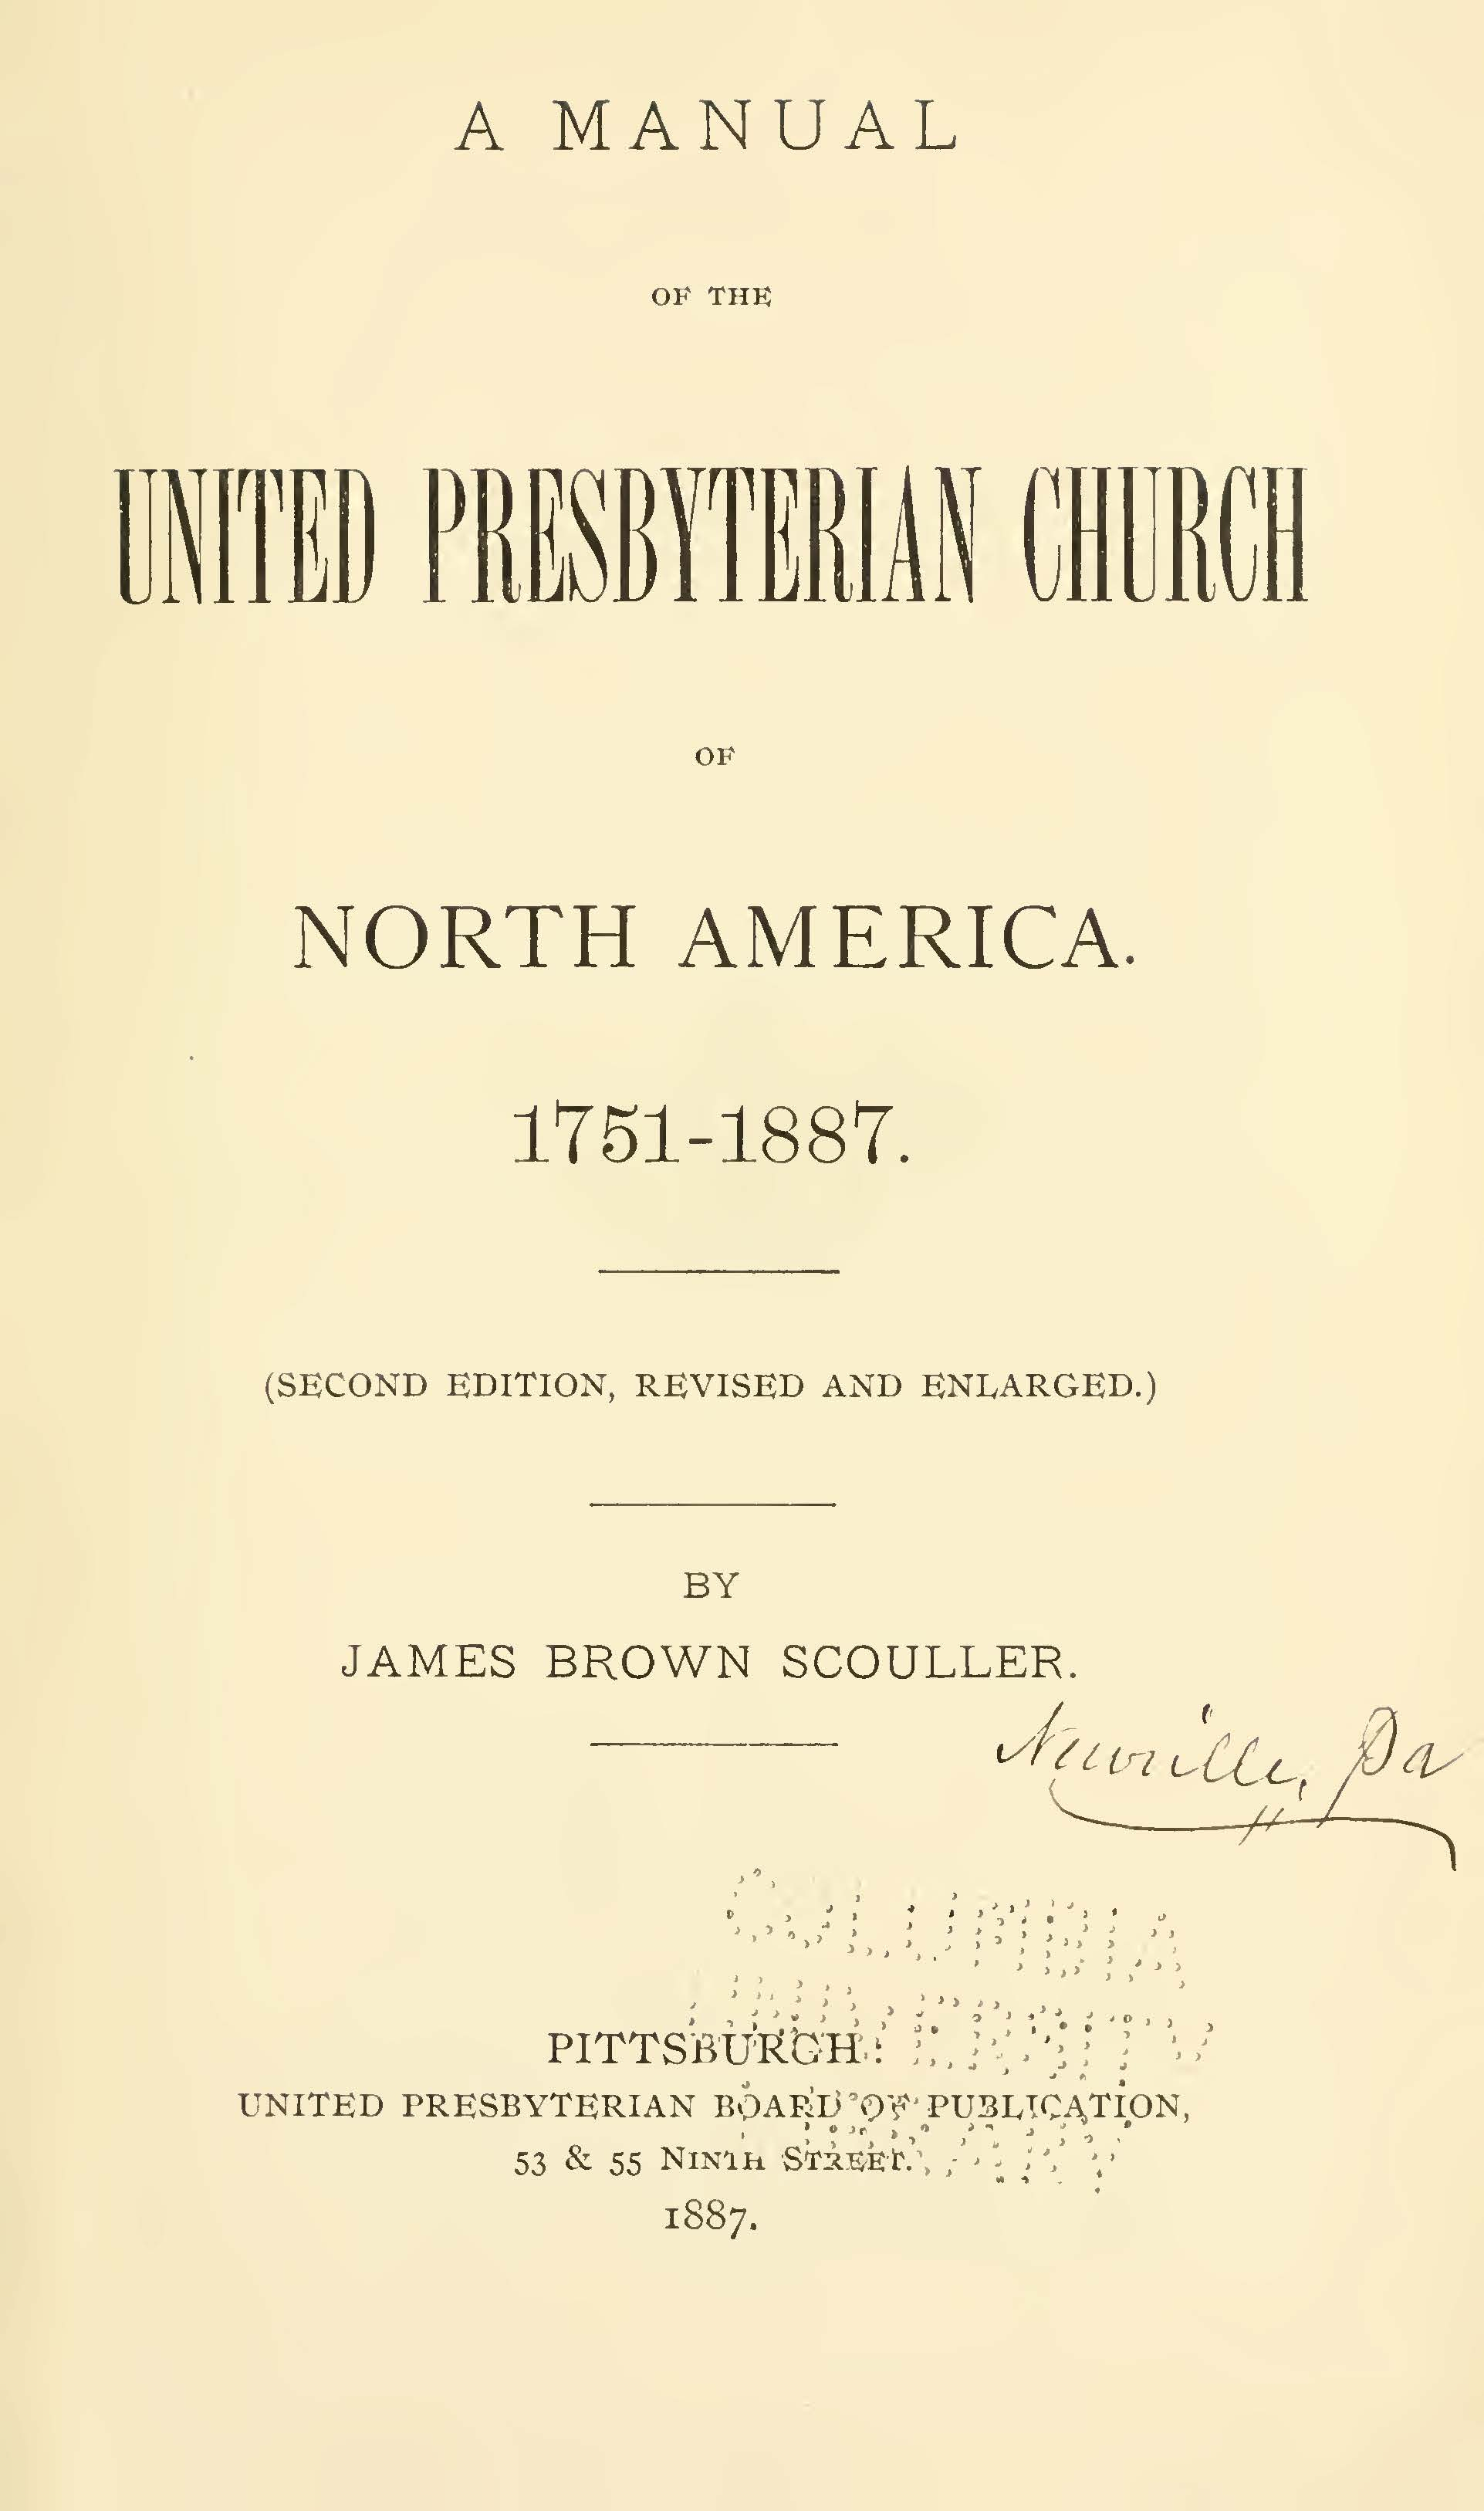 Scouller, James Brown, A Manual of the United Presbyterian Church of North America, 1751-1887 Title Page.jpg